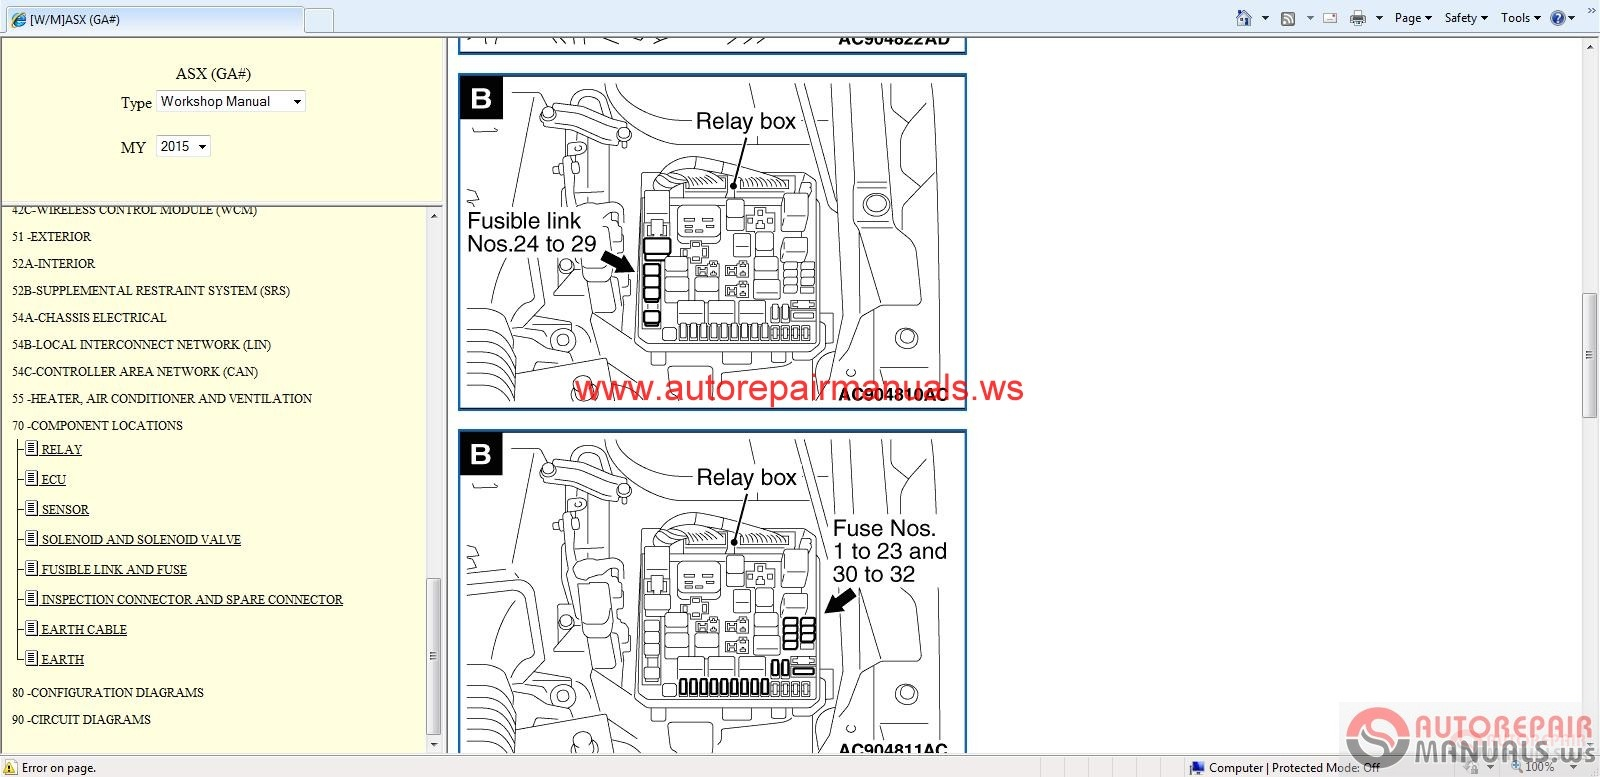 Mitsubishi Pajero Wiring Diagram Download 41 Images 4g92 Asx Eur 2015 Service Manual Cd5 Cd Auto Repair Forum